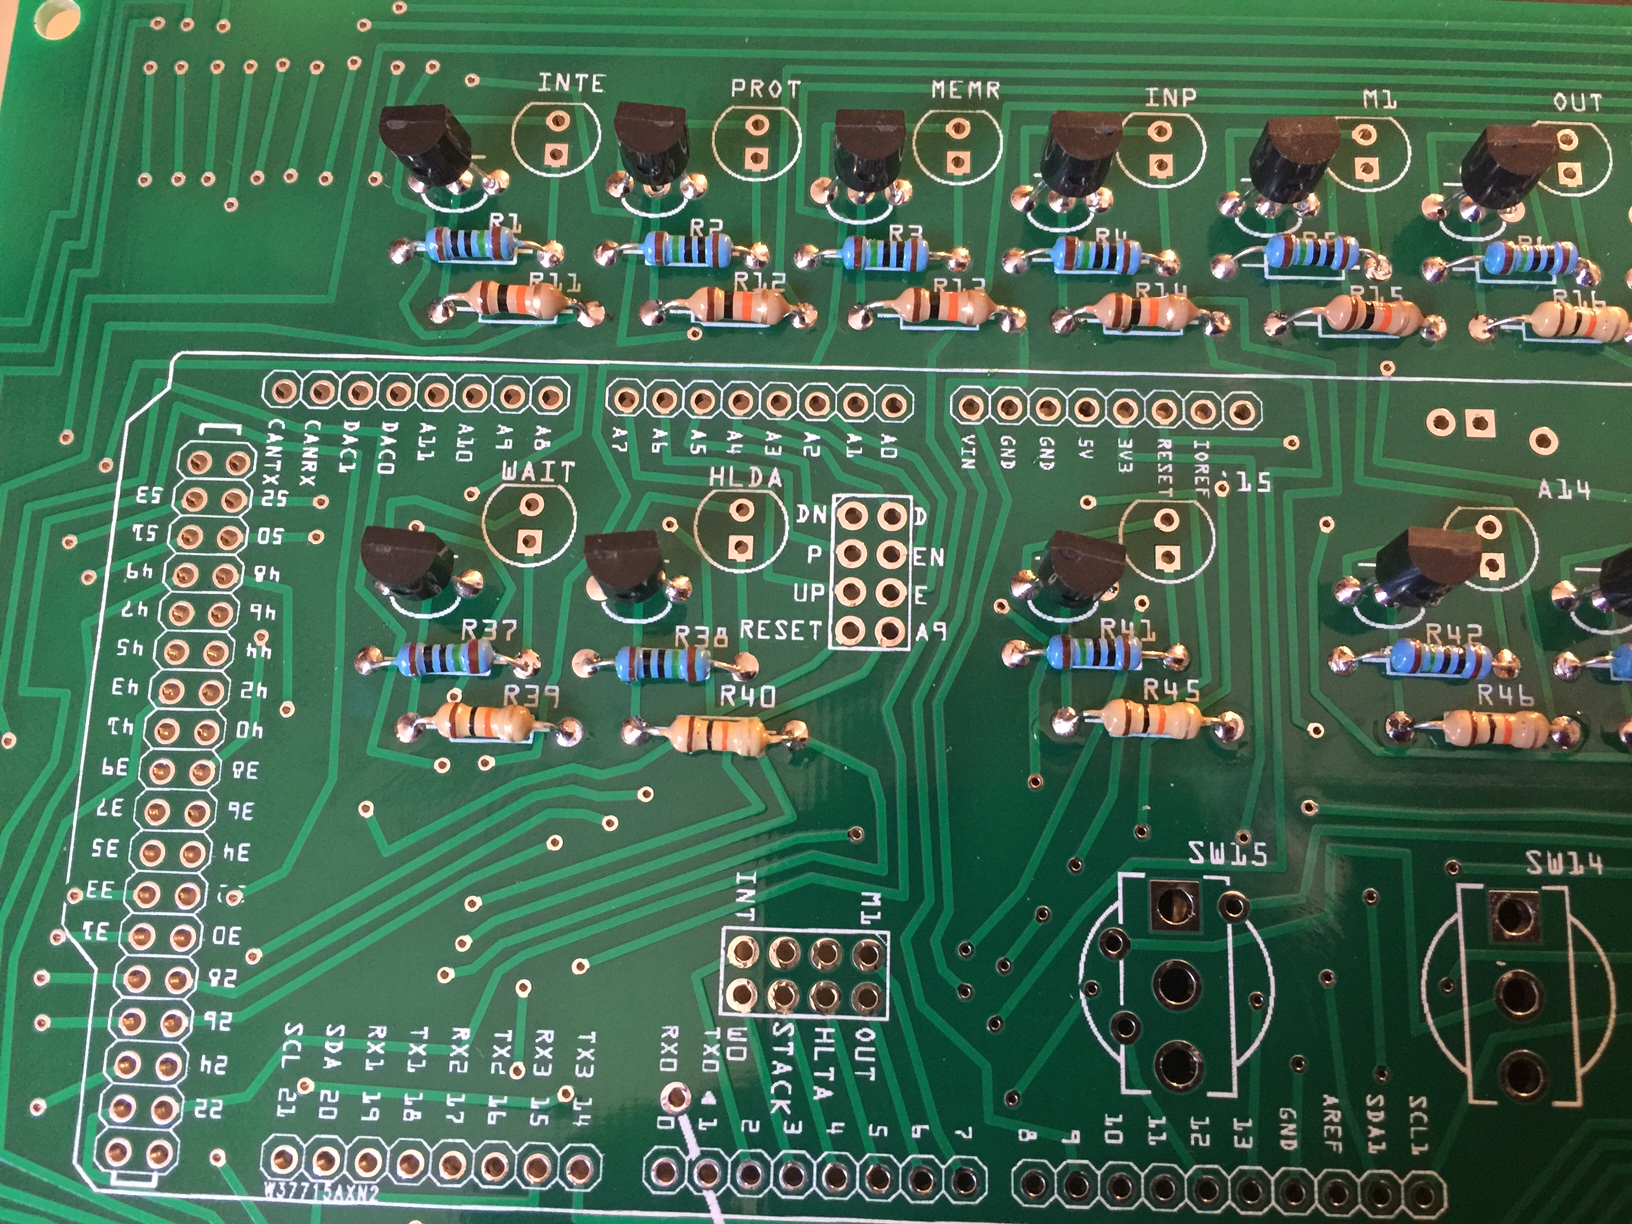 Build Instructions Beta Adwater Stir Electronic Components Including Circuit Boards Sit In A Pile Before Just Make Sure The Flat End Of Resistor Is Facing Up Like Image Printed On Board